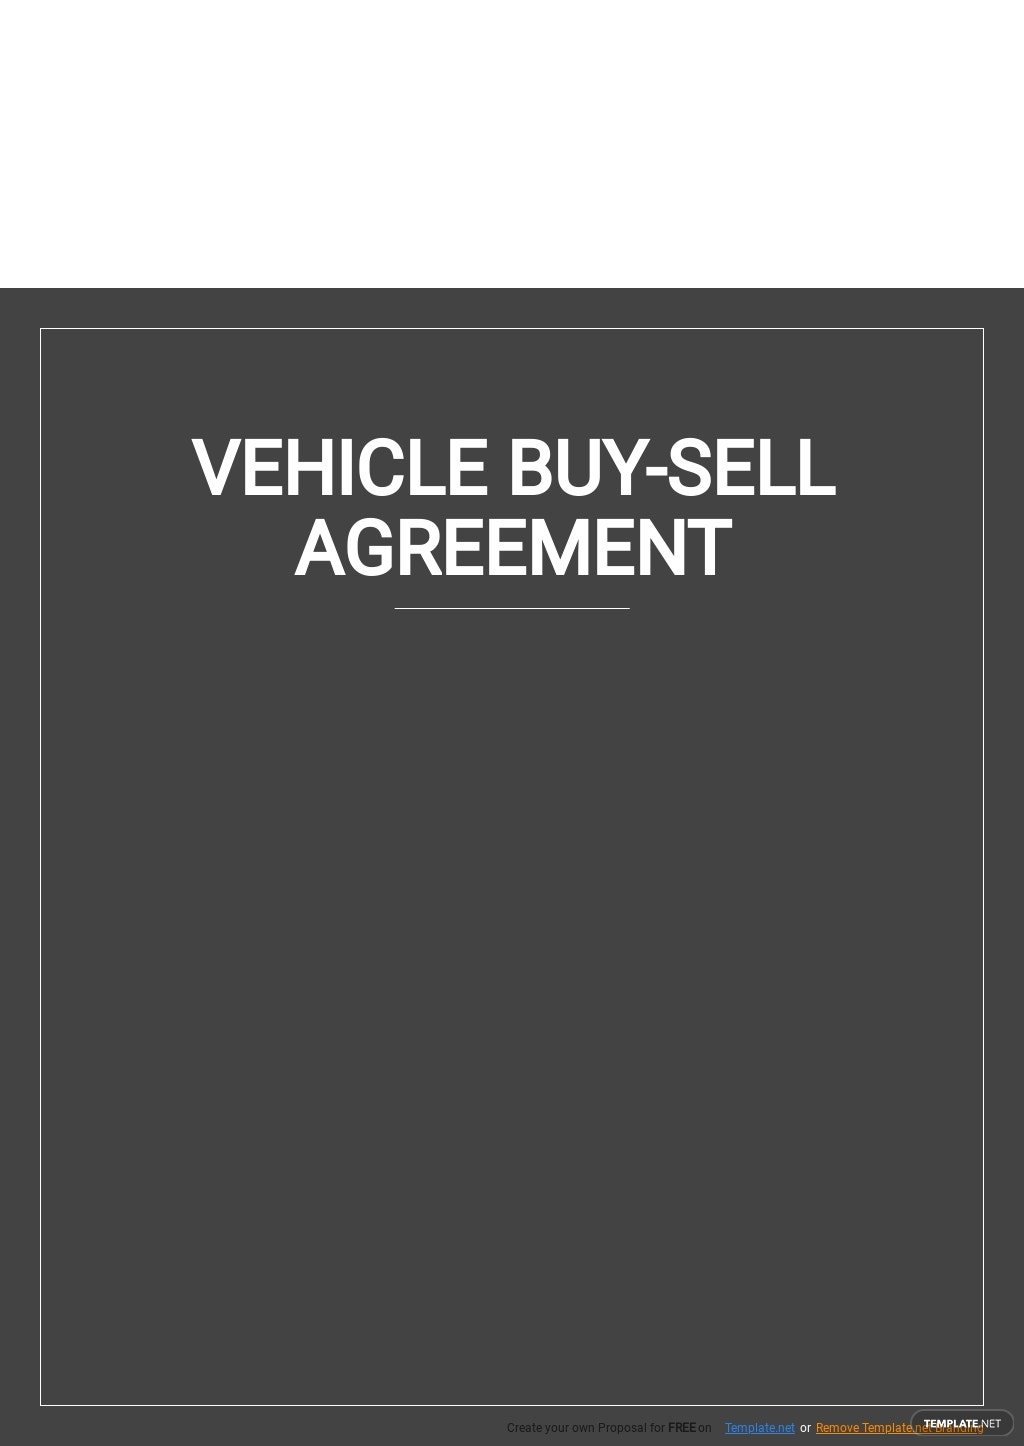 Vehicle Buy Sell Agreement Template.jpe